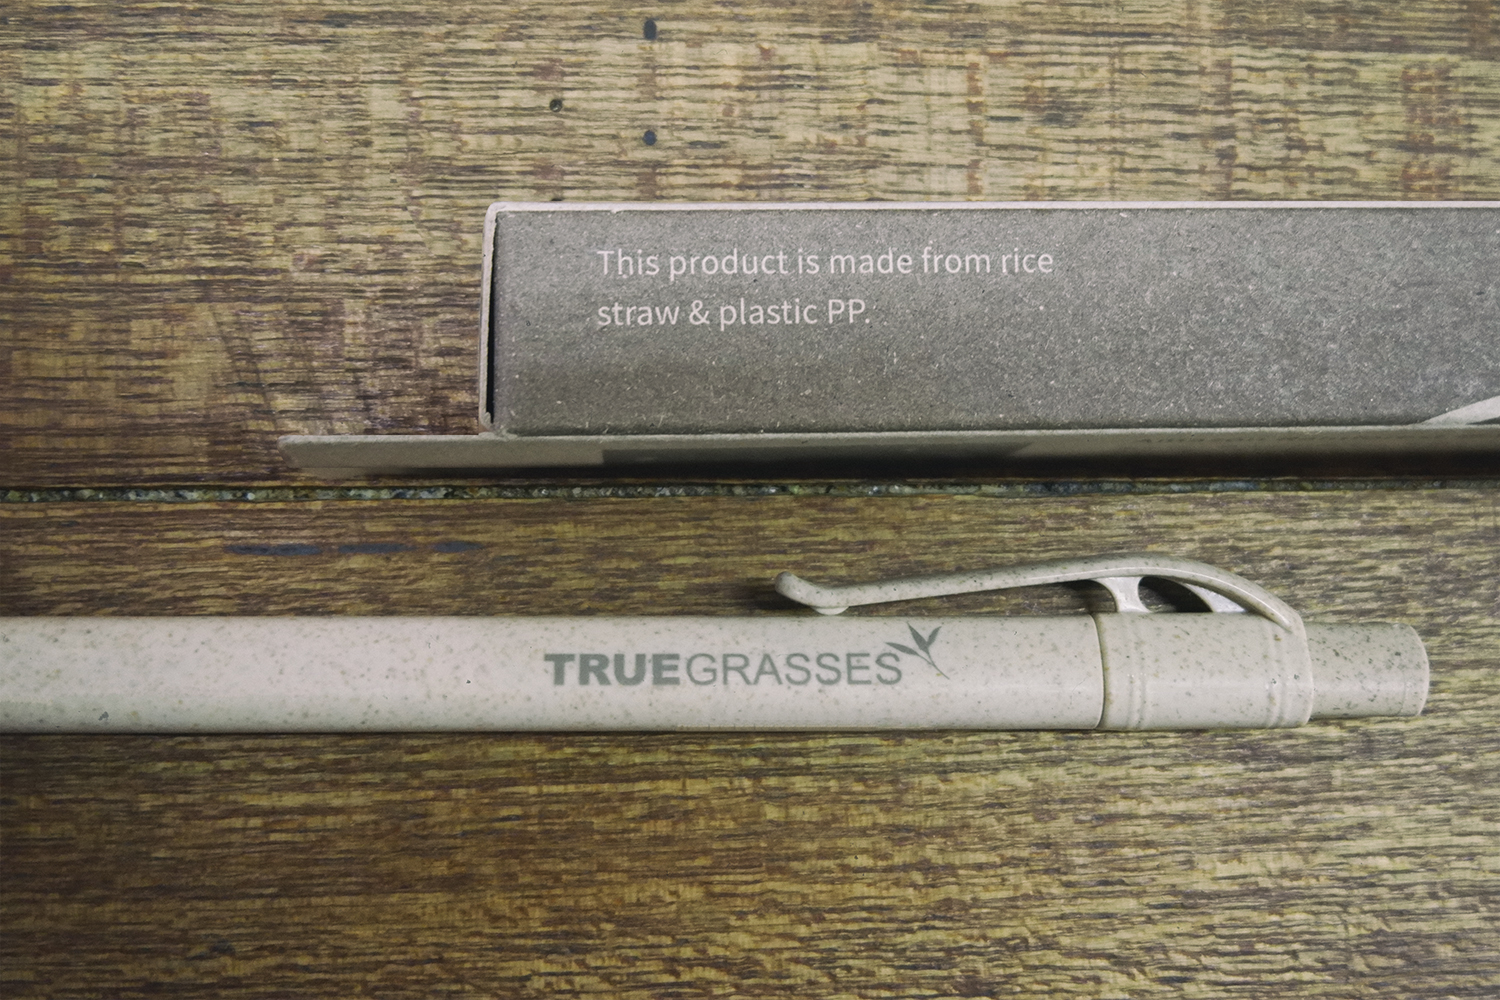 真稻筆/Truegrasses Straw Ball Pen